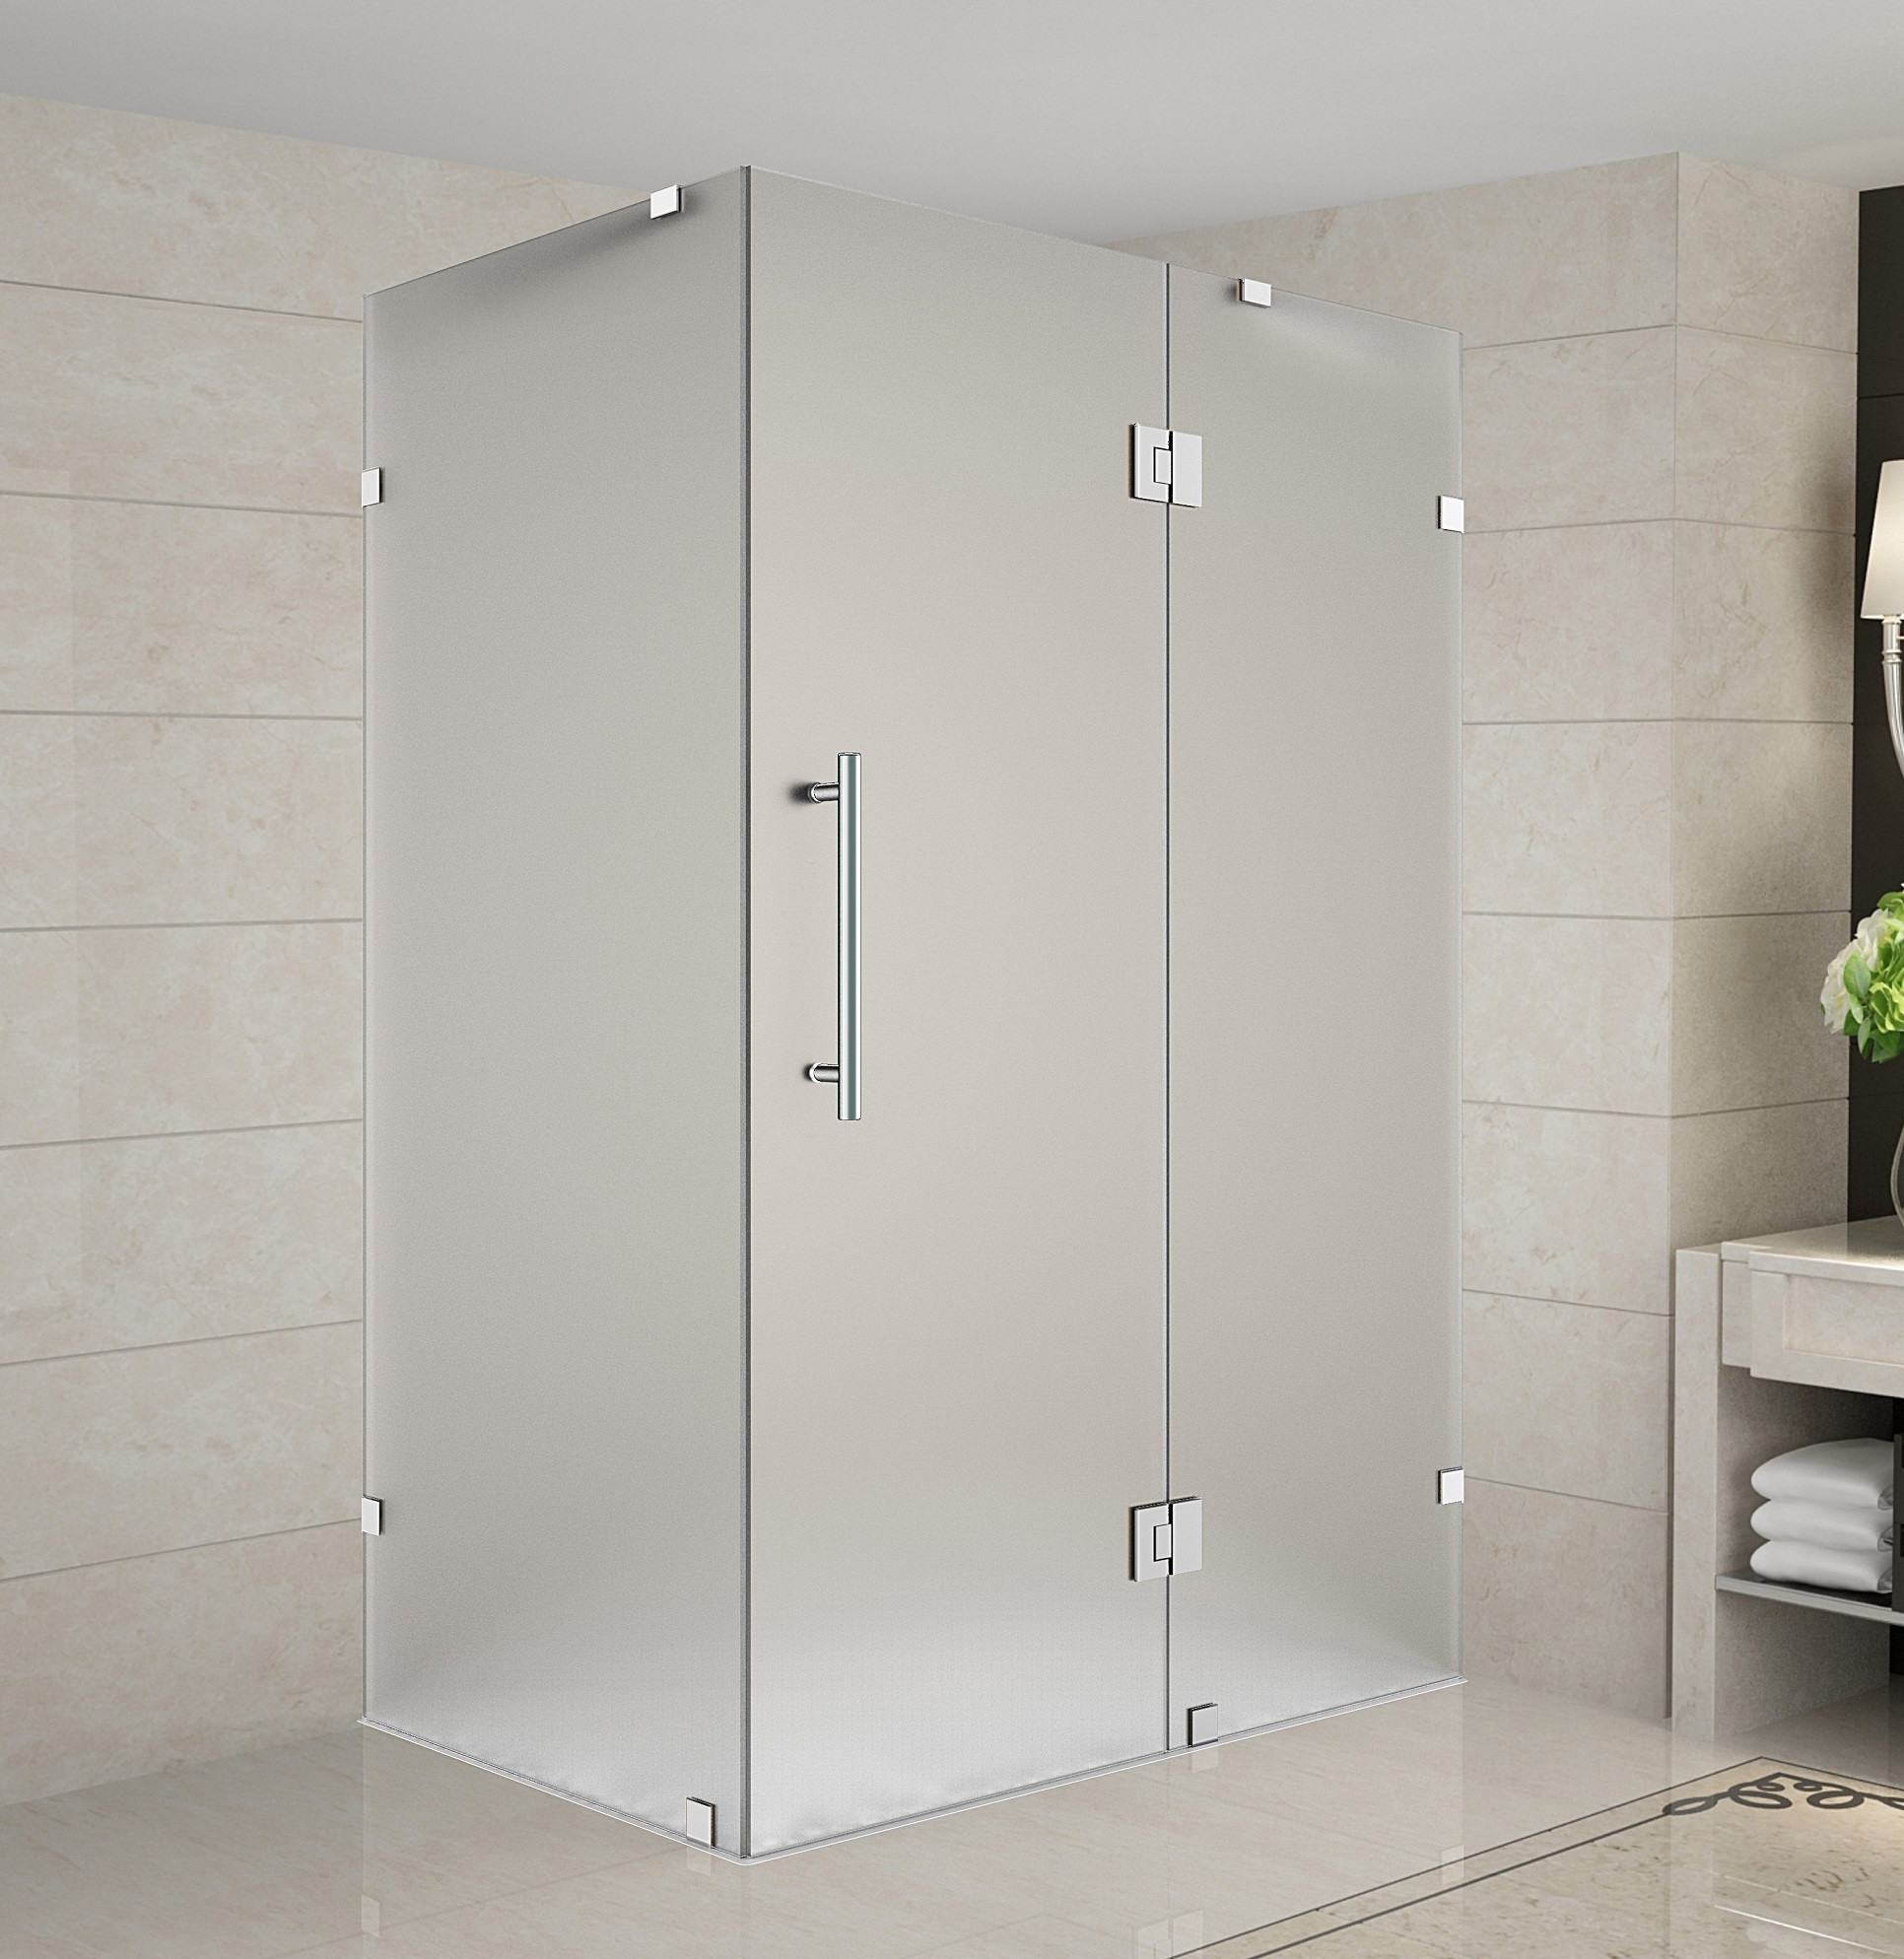 Aston Global SEN987F-SS-3638-10 Frameless Frosted Glass Shower Enclosure In Stainless Steel